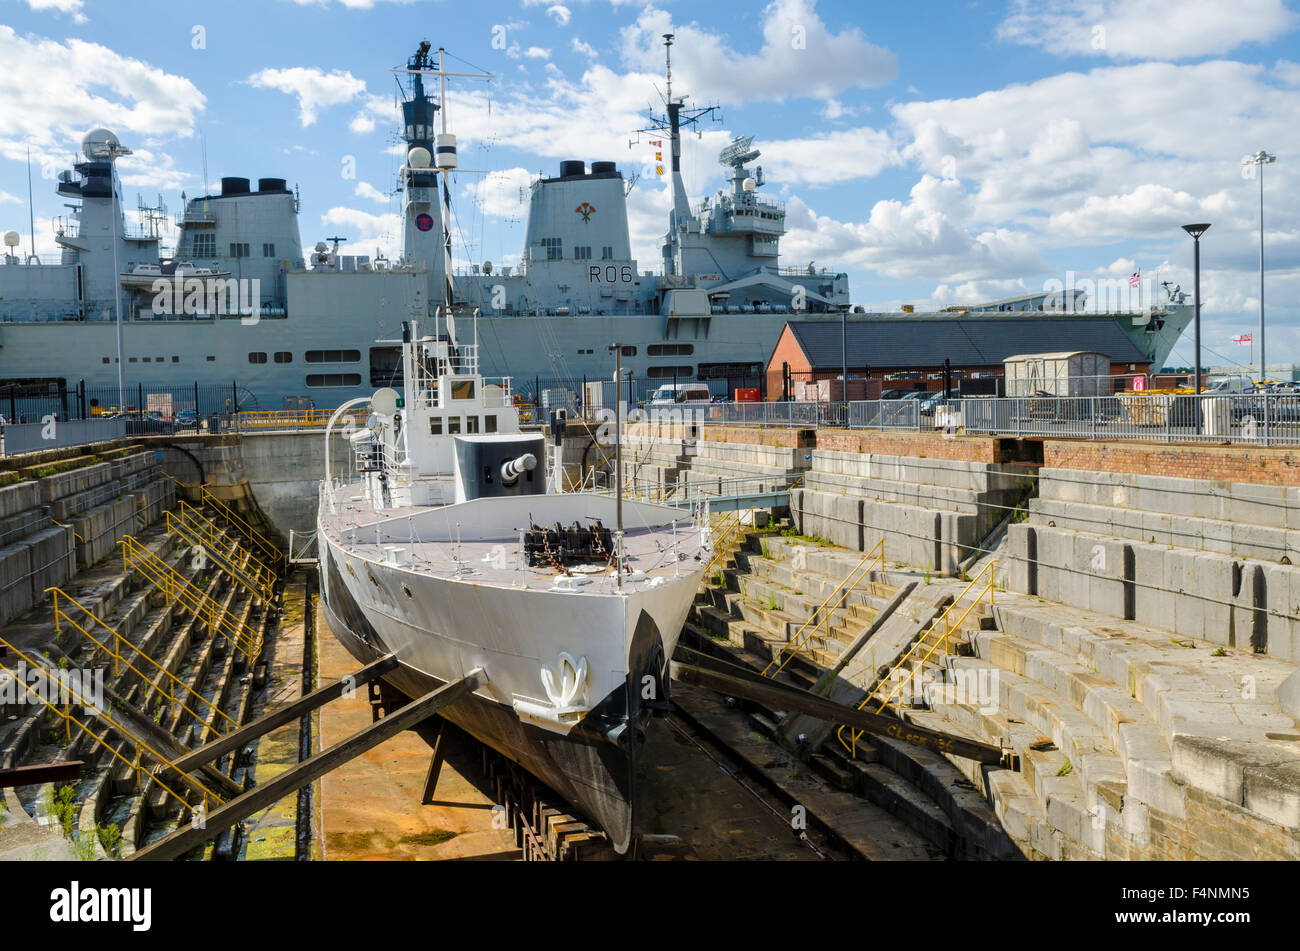 HMS M33 First World War Warship in dry dock at Portsmouth Historic Dockyard, Hampshire, England. Stock Photo